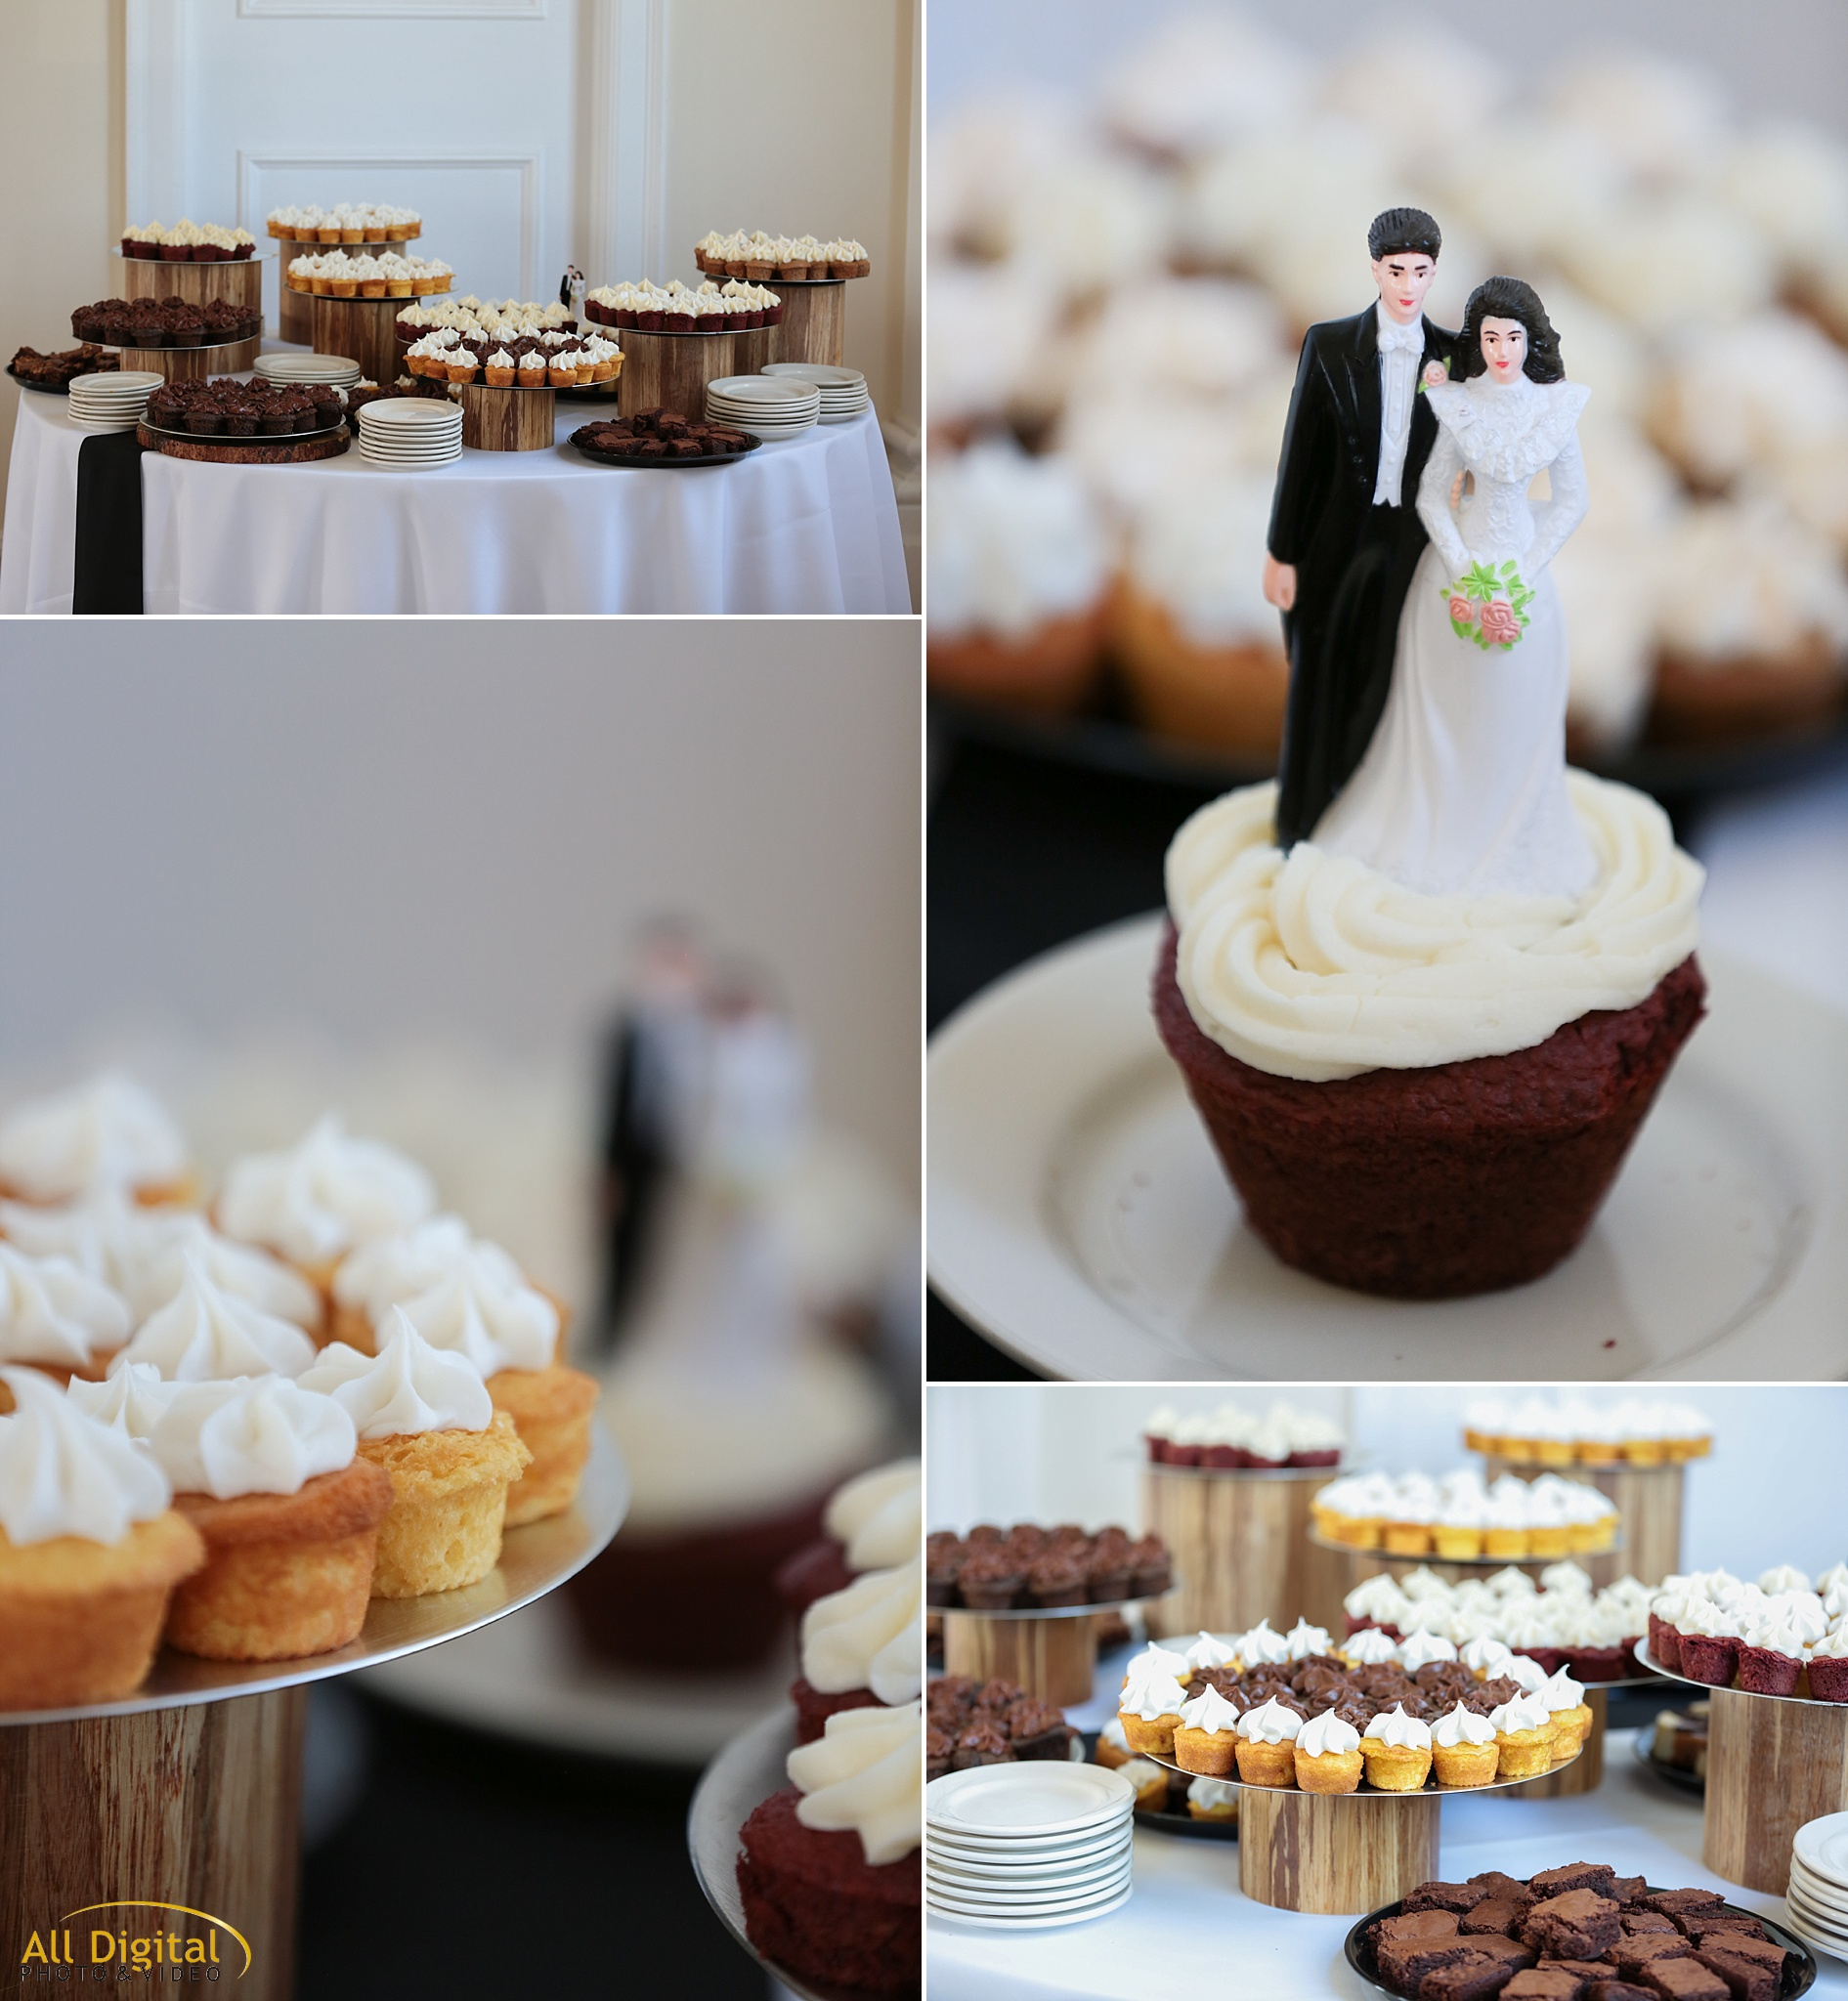 Wedding Cupcakes by YouWantPie at the Stanley Hotel in Estes Park, Colorado